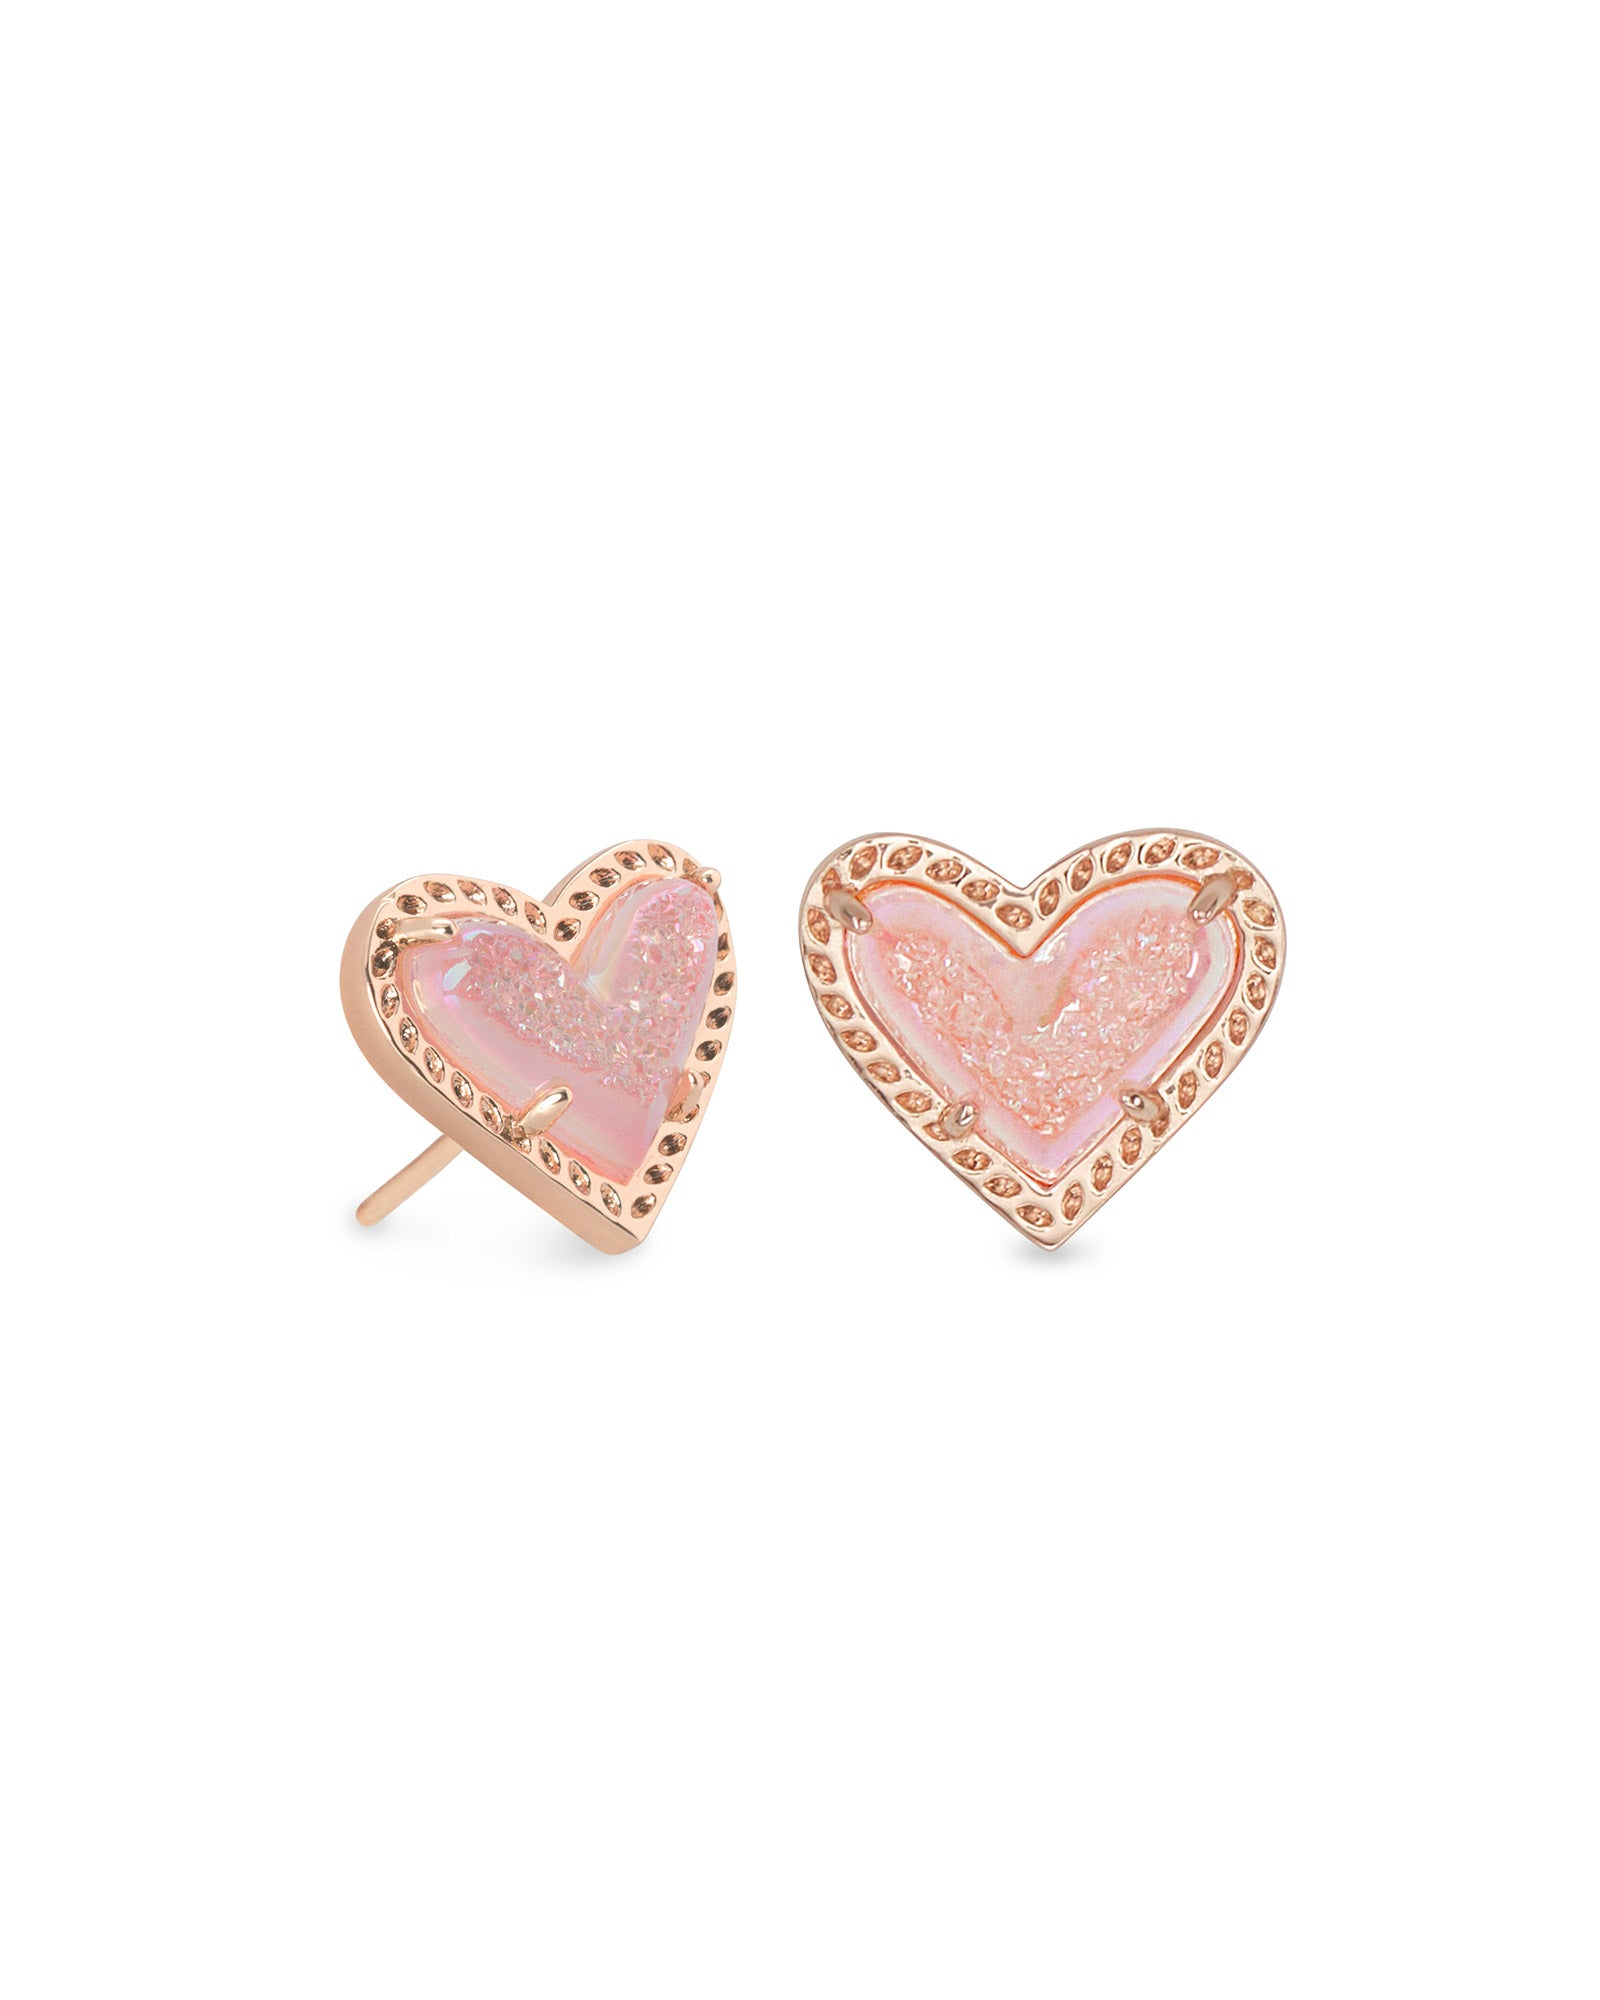 Ari Heart Stud Earring in Rose Gold